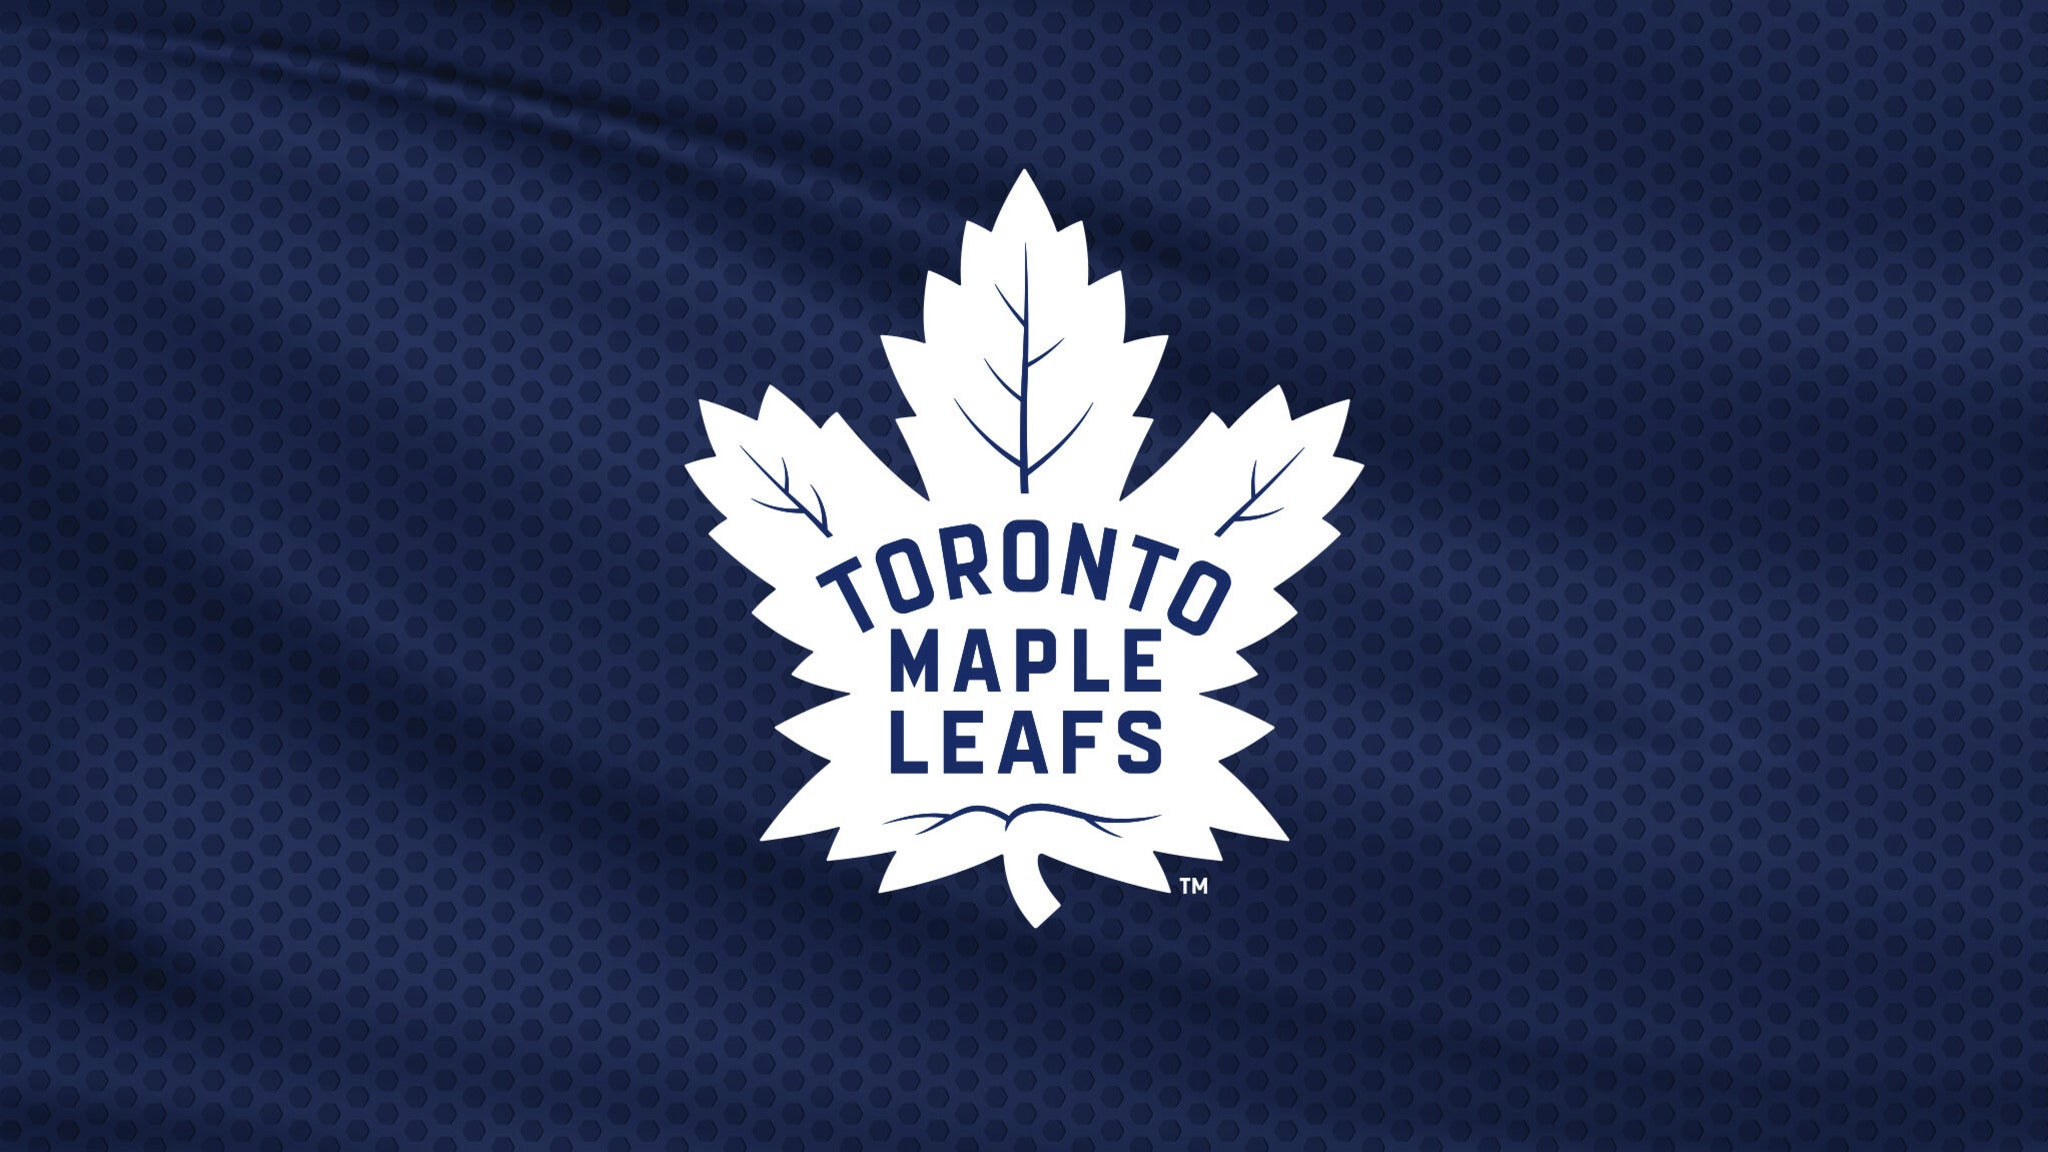 Toronto Maple Leafs Tickets 2020 Nhl Tickets Schedule Ticketmaster